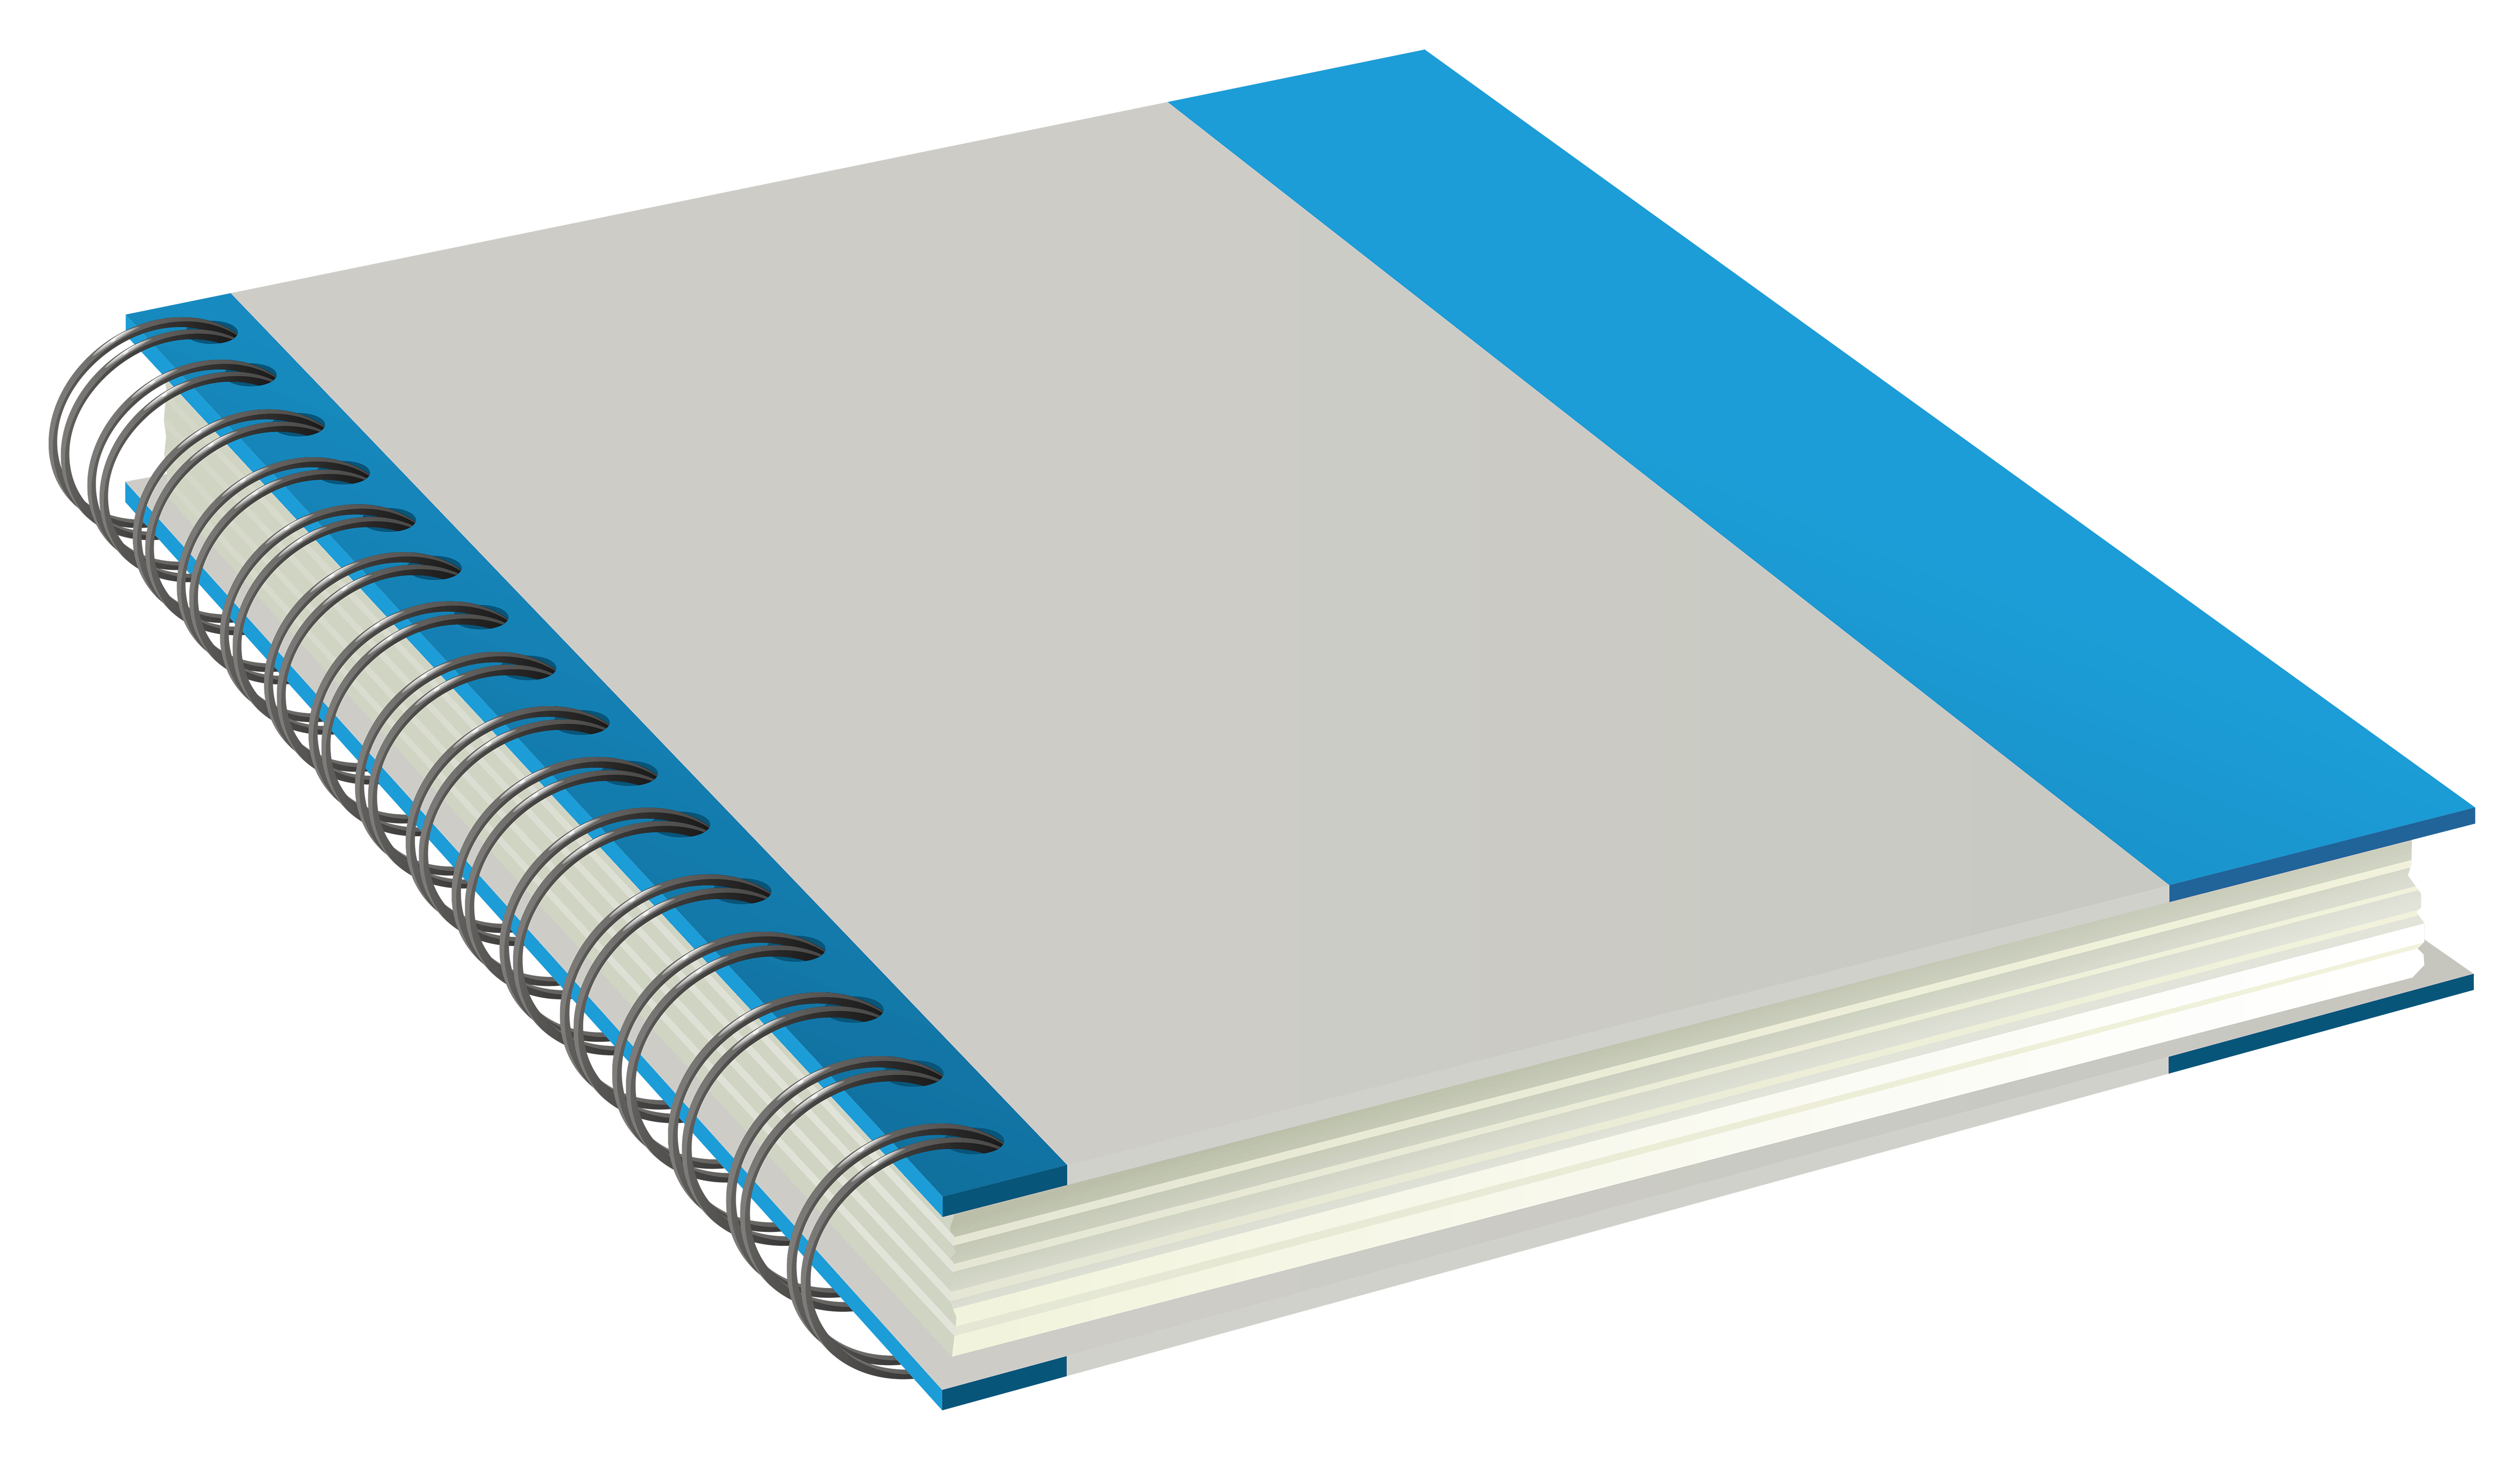 Notebook PNG Vector Clipart